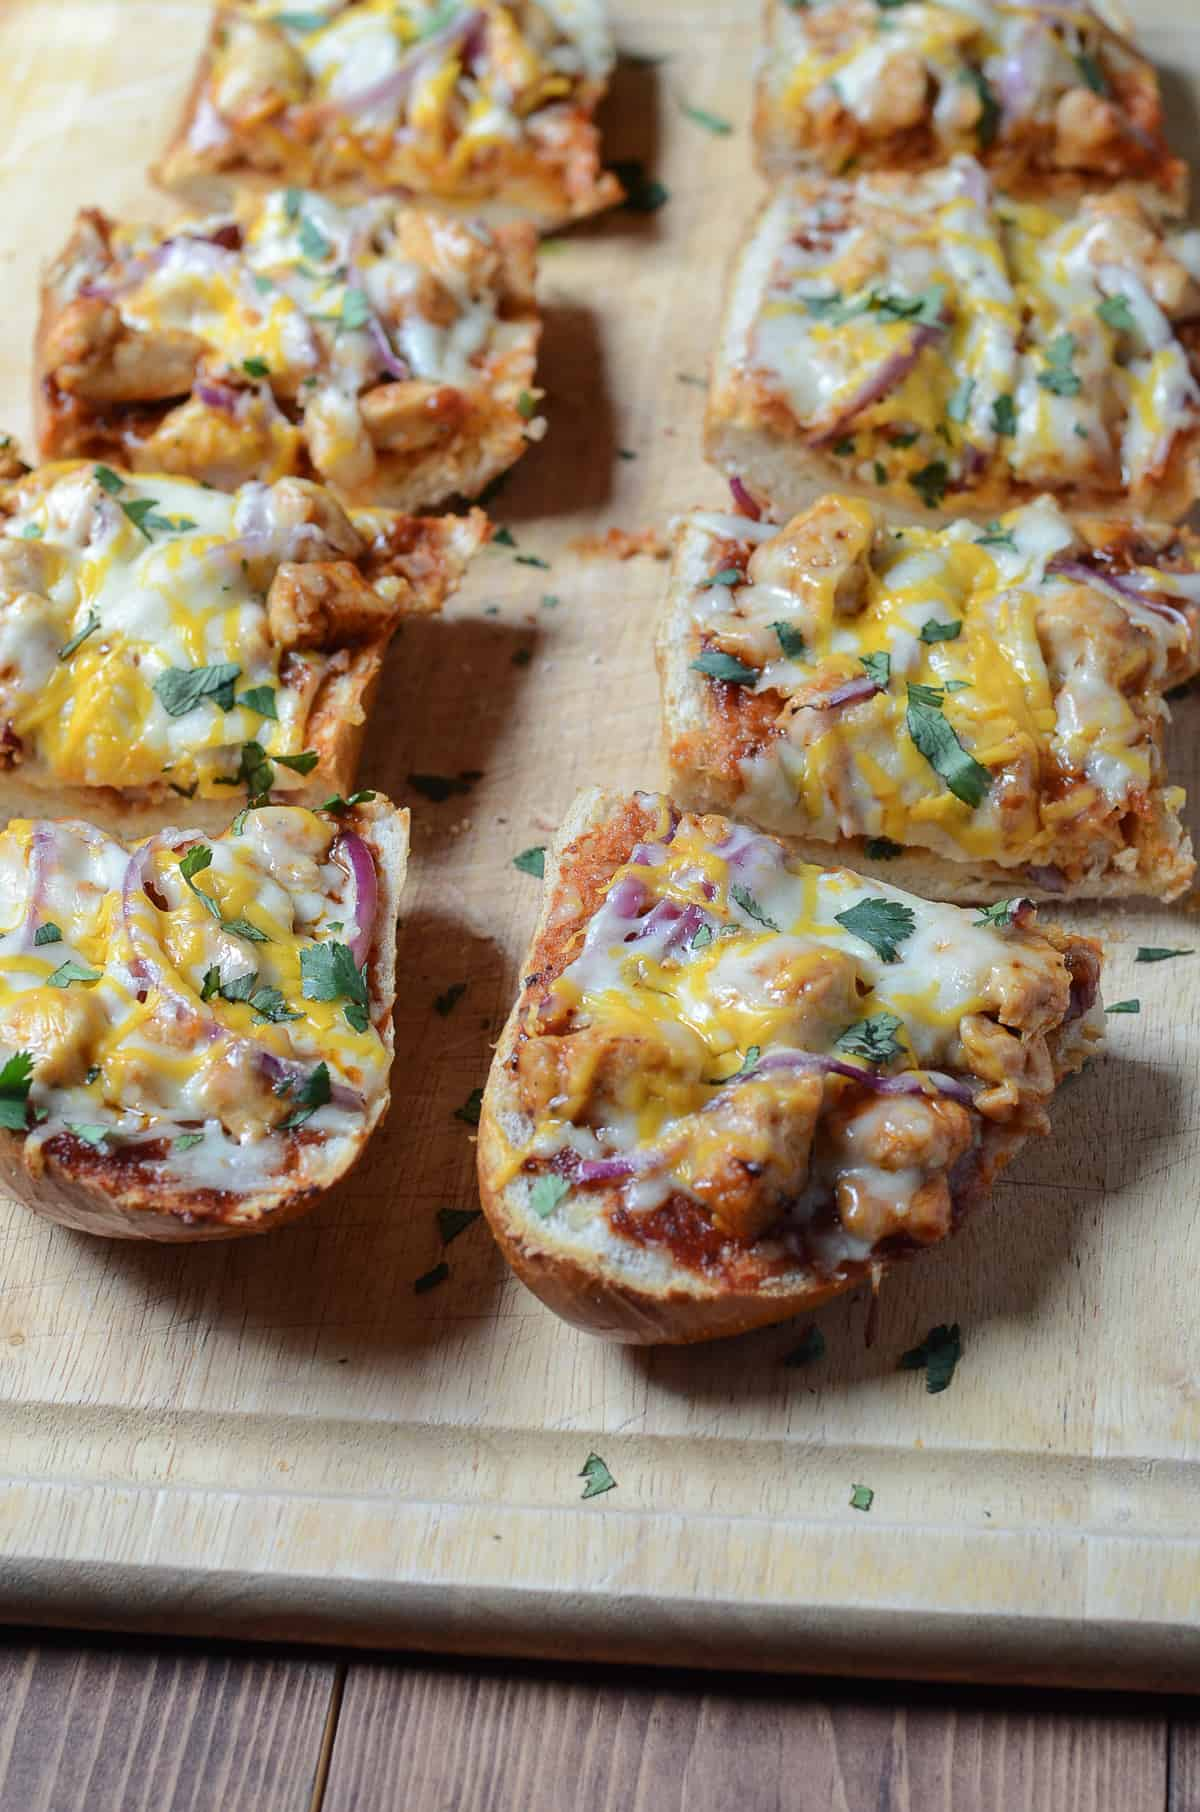 Slices of BBQ Chicken French Bread Pizza on a cutting board.